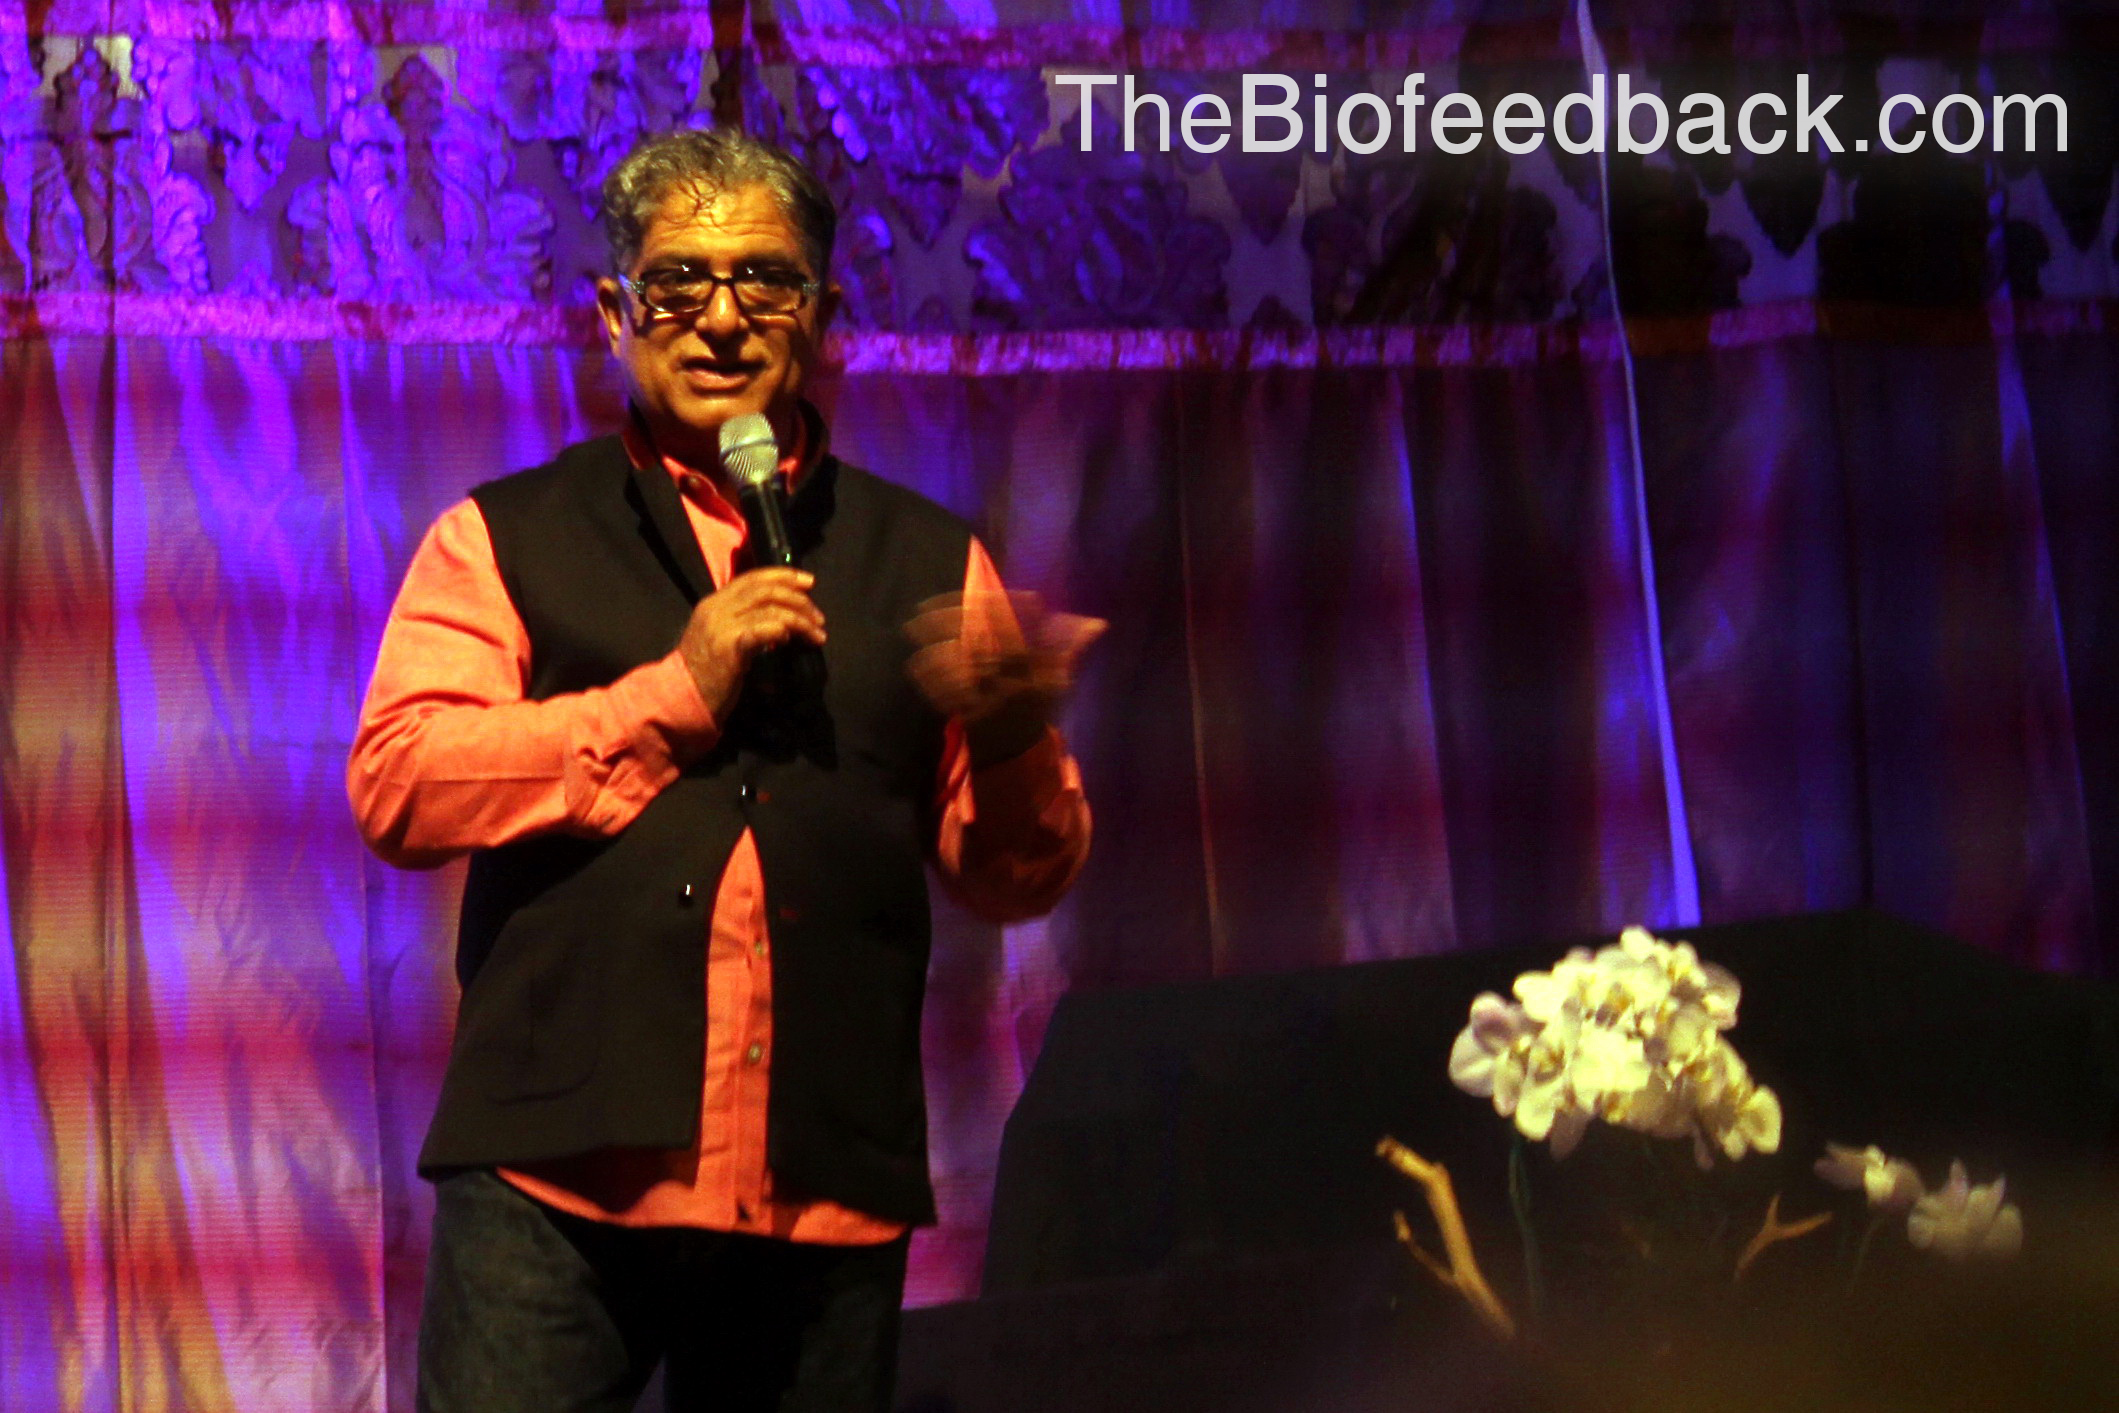 Deepak Chopra Talking About Biofeedback and Meditation